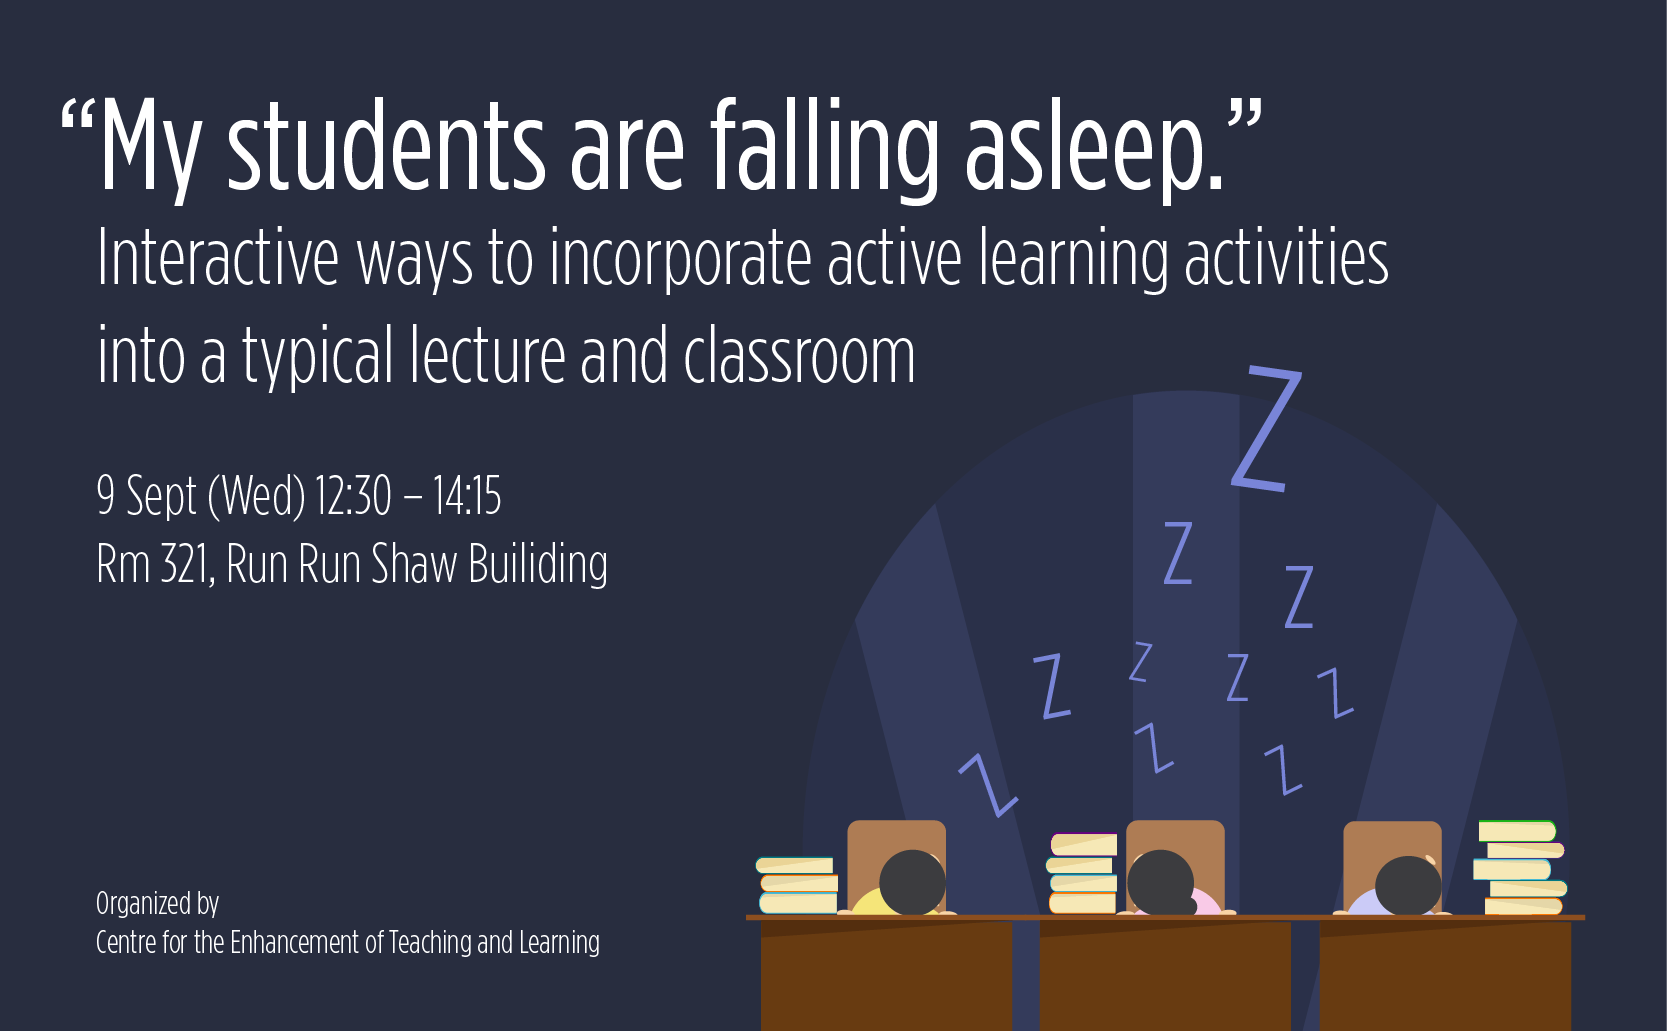 """My students are falling asleep."" – Interactive ways to incorporate active learning activities into a typical lecture and classroom"